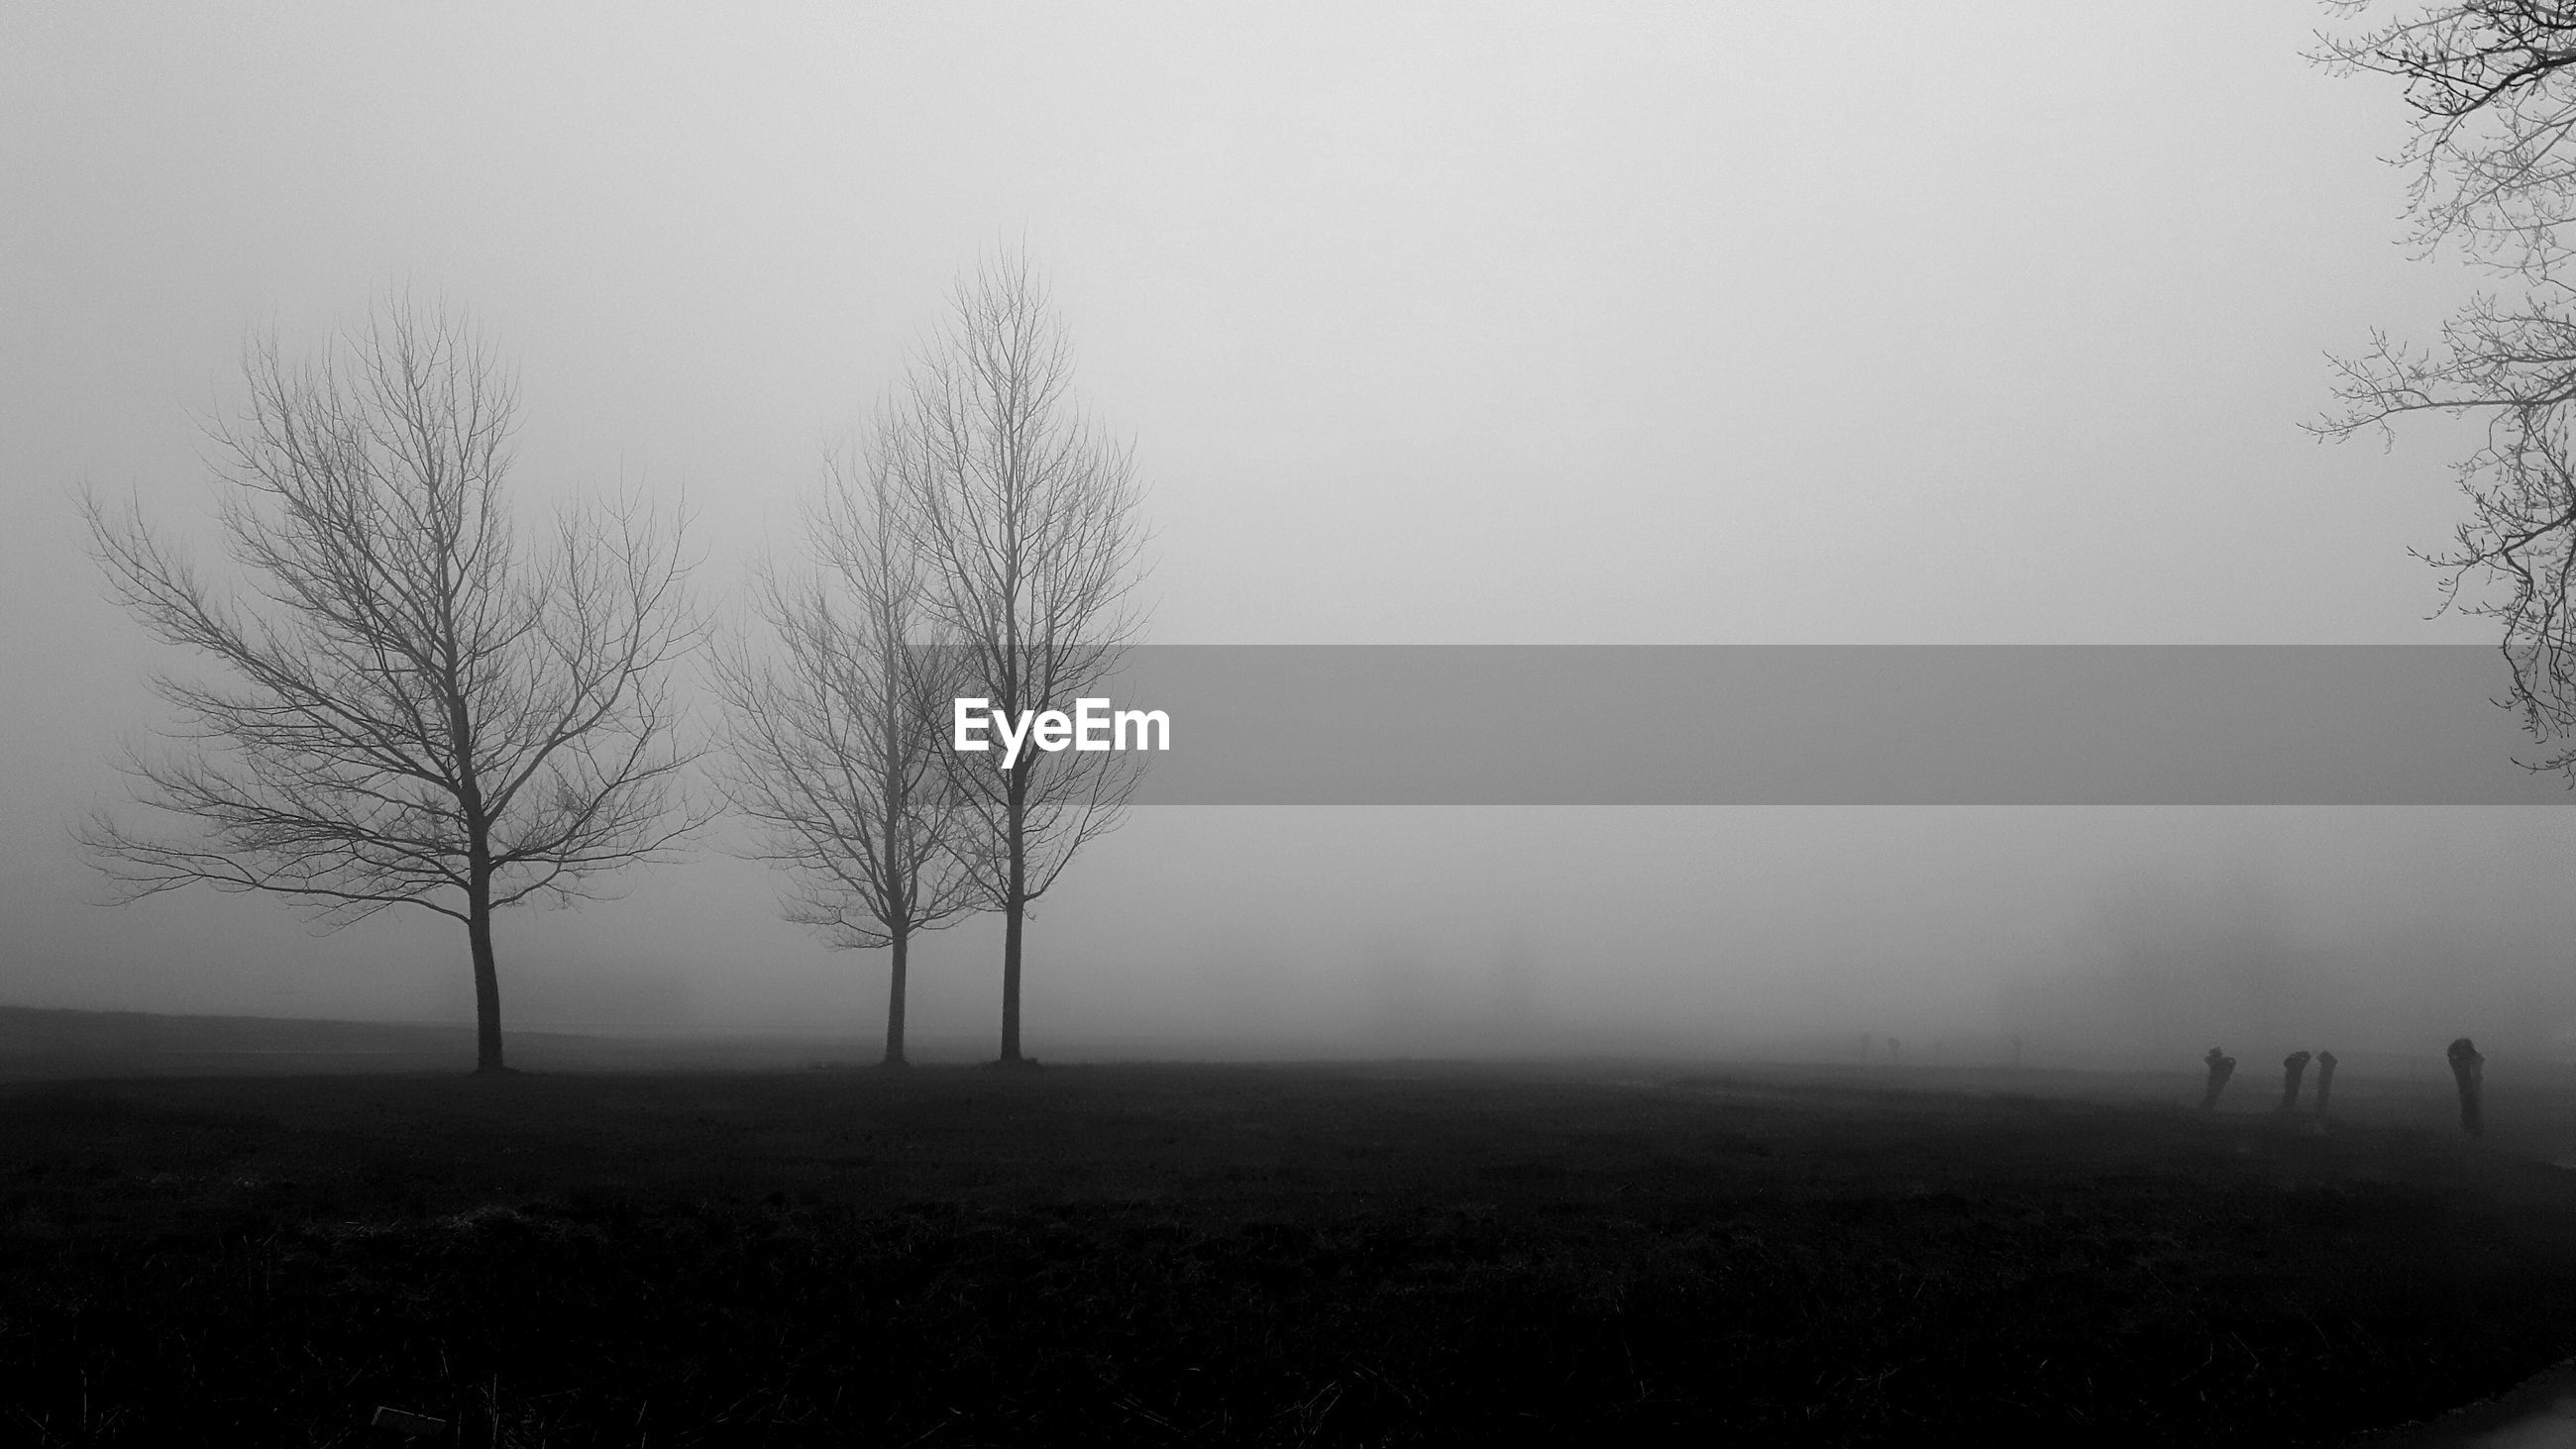 BARE TREE IN FOGGY WEATHER